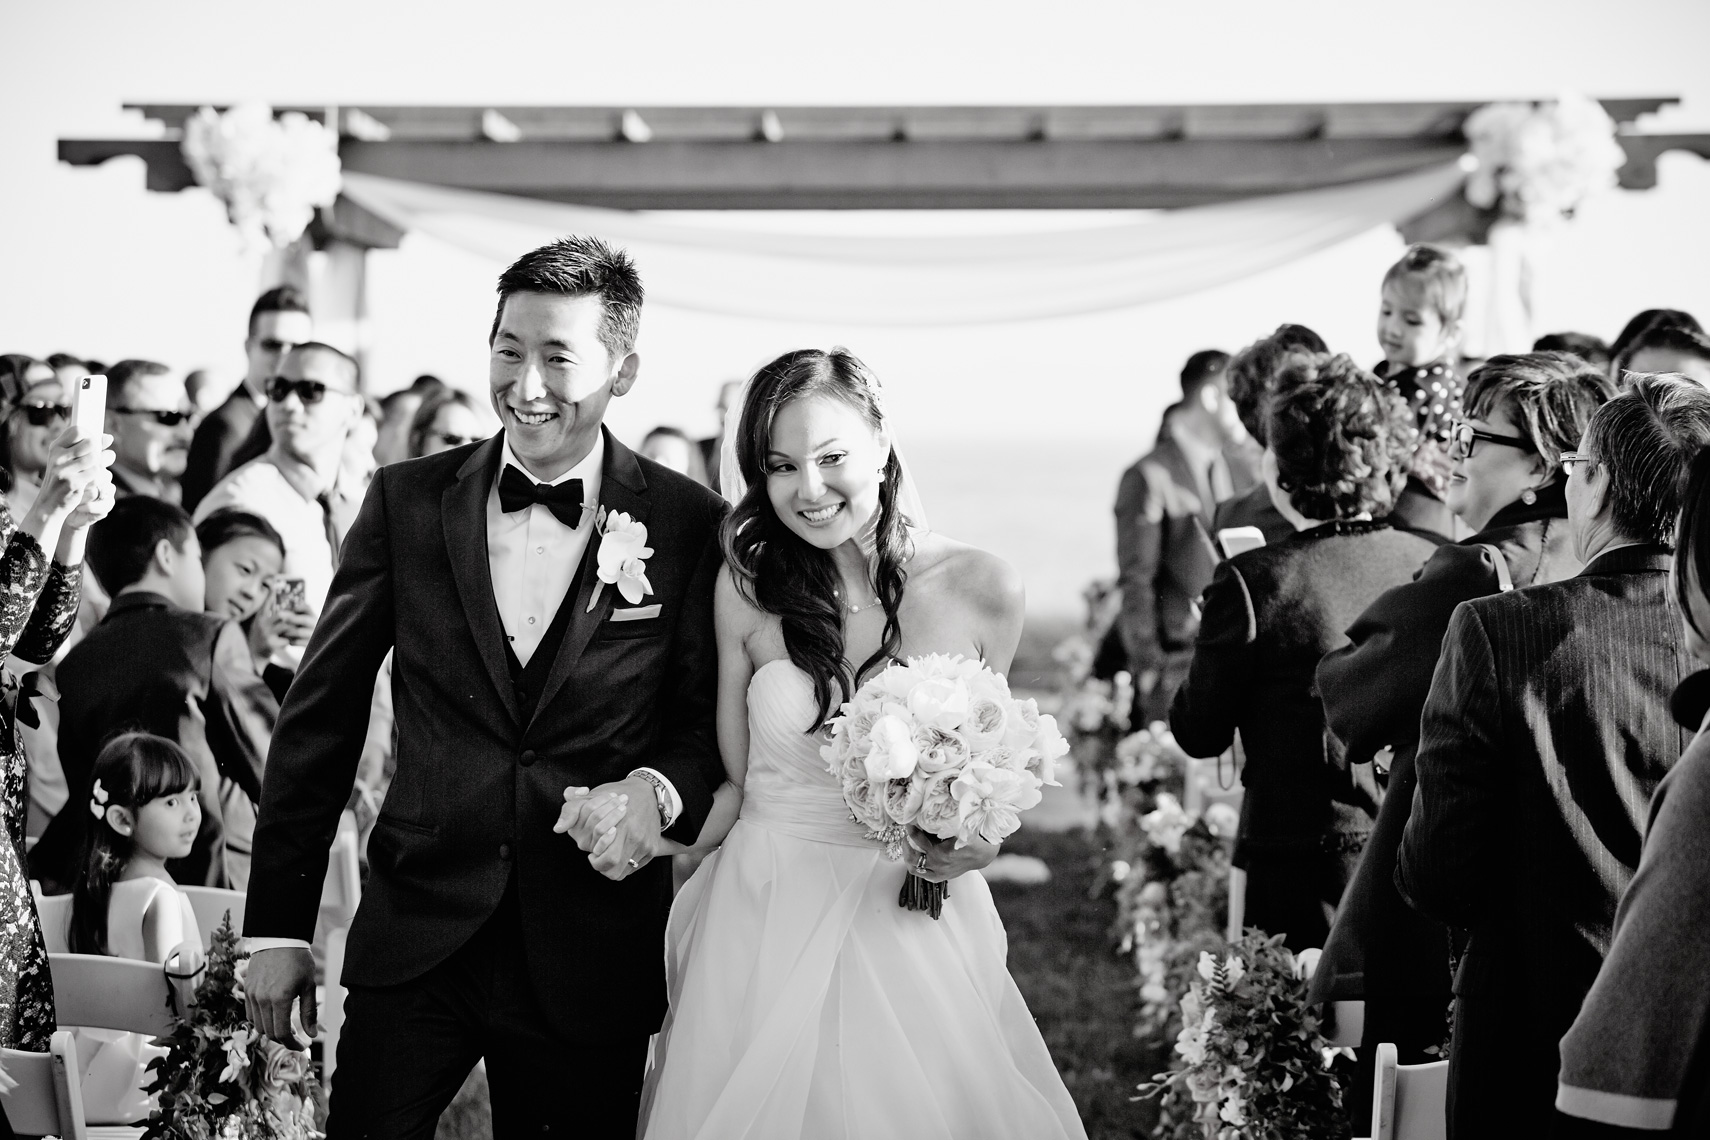 Bride and groom walk down the aisle after getting married at Terranea Resort in Rancho Palos Verdes, California.